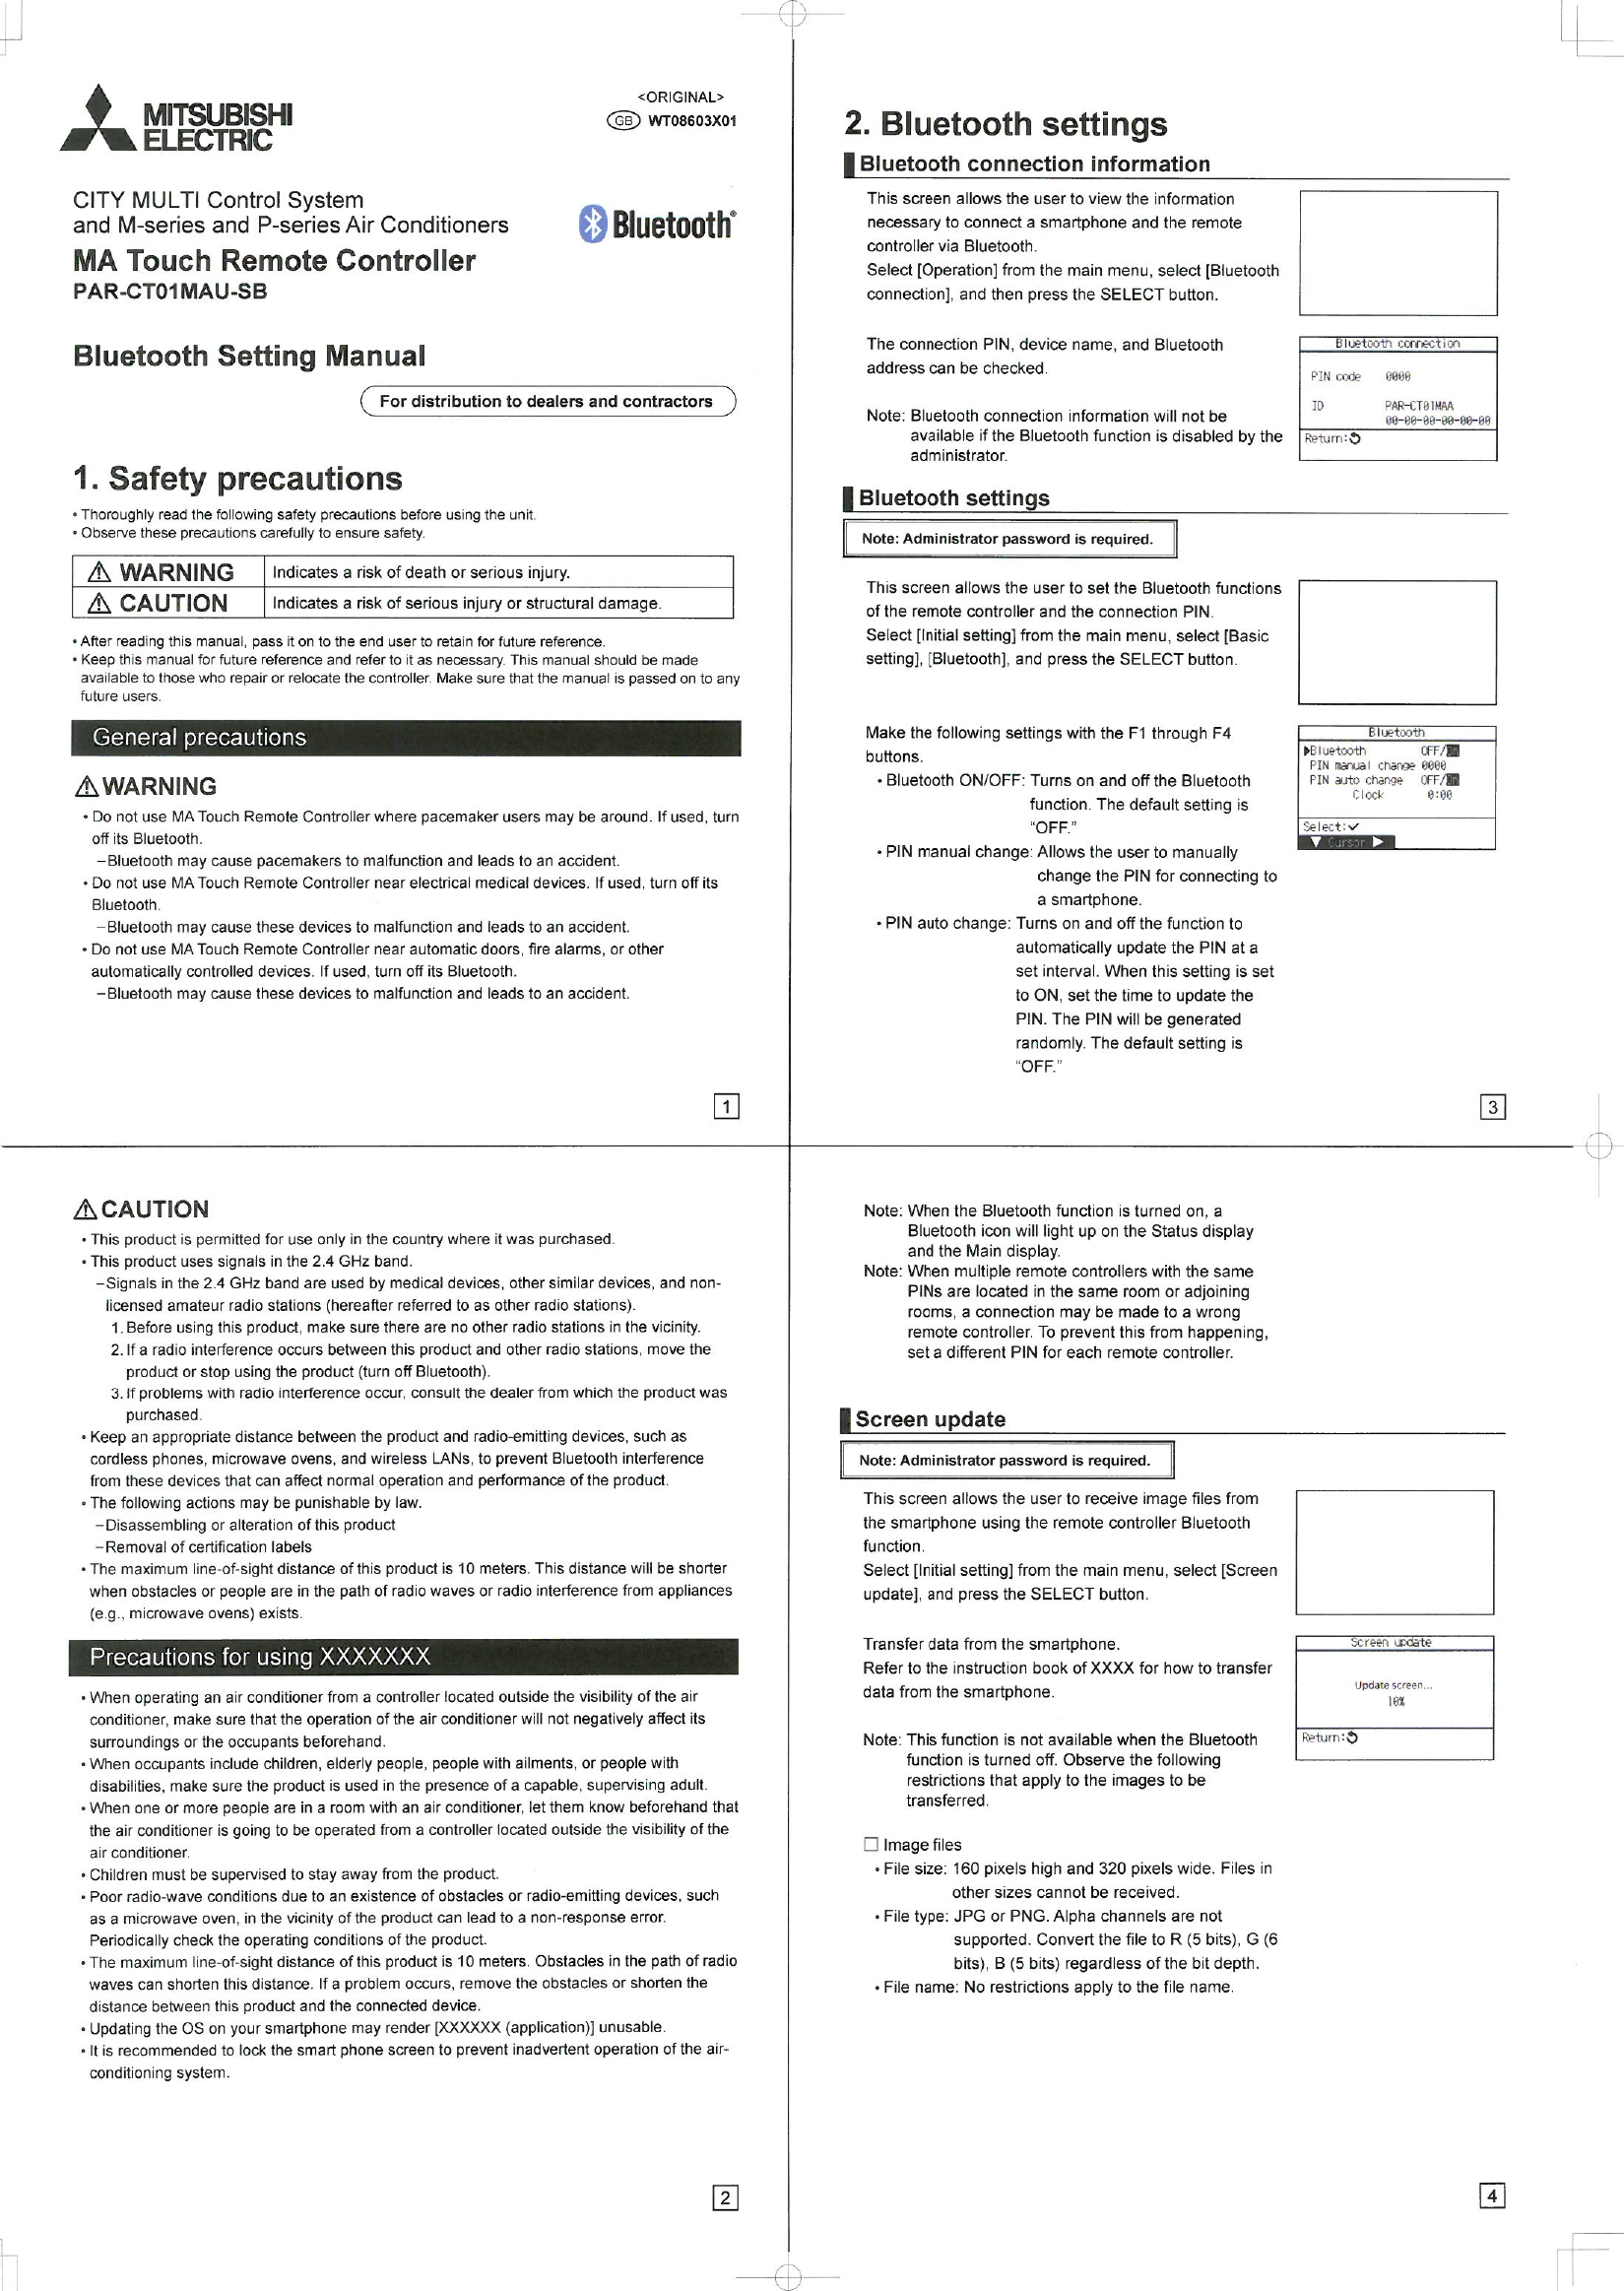 mitsubishi heavy industries air conditioning user manual bunnings